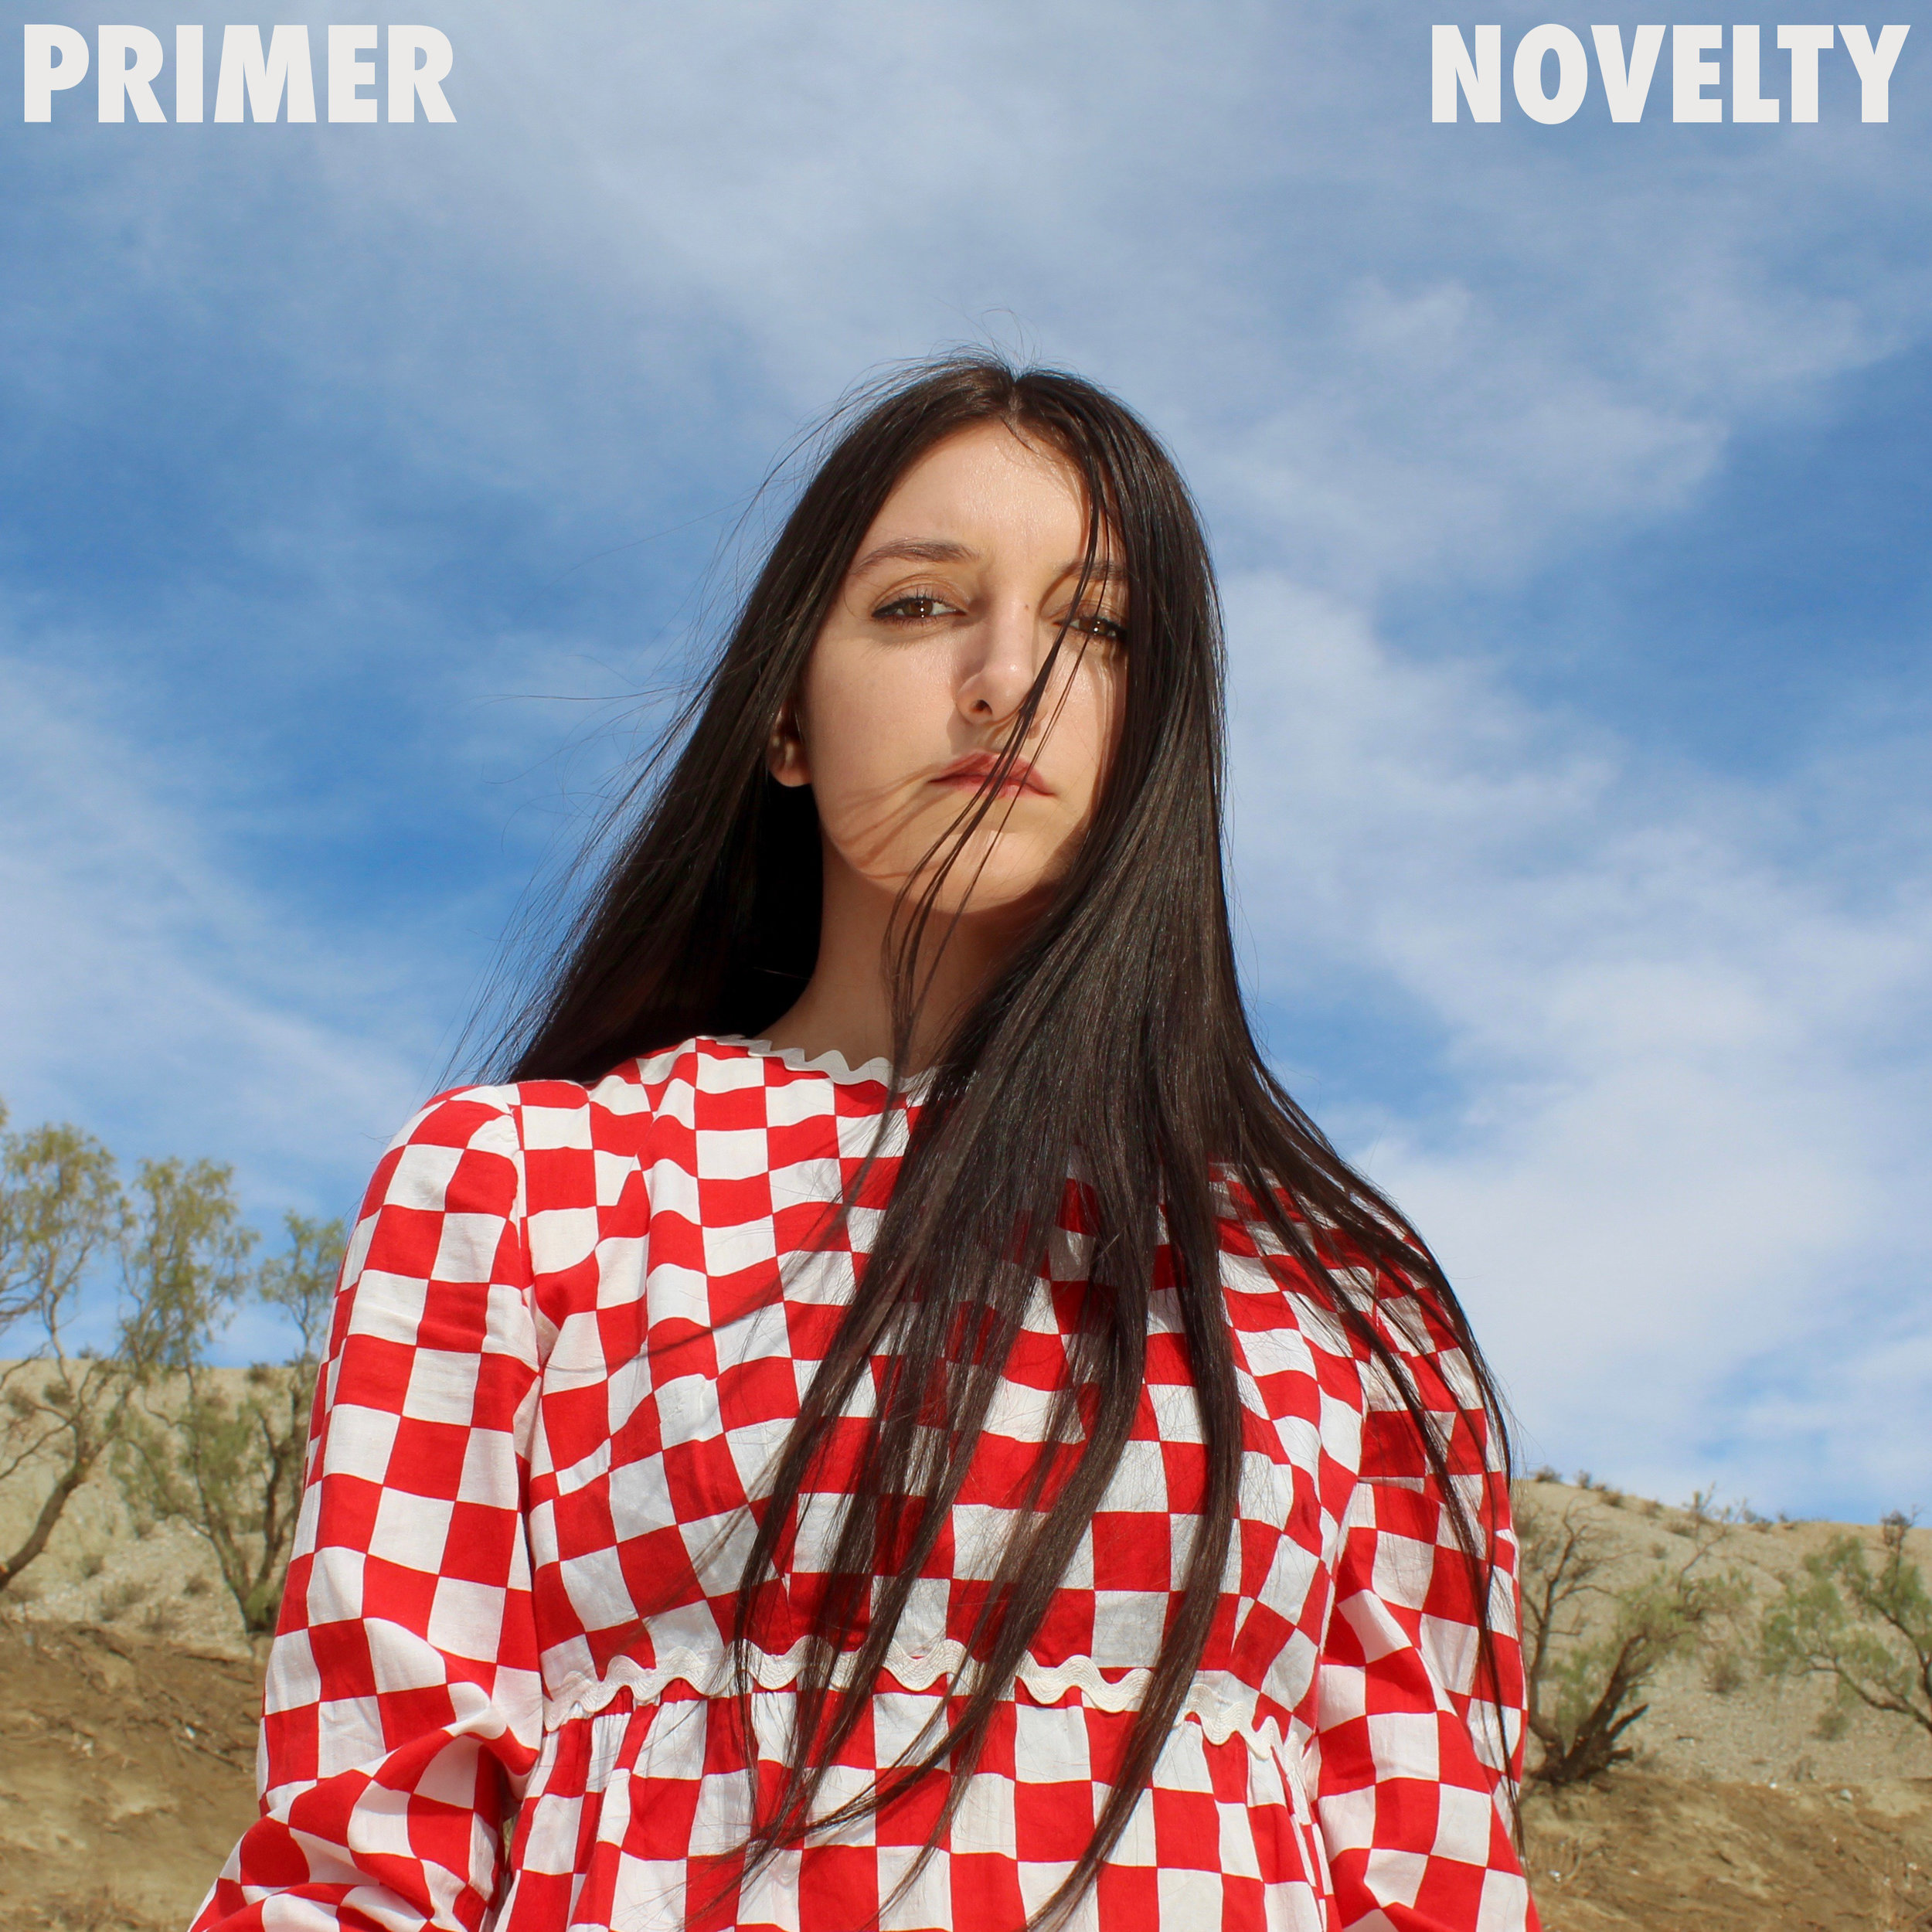 Primer - Novelty (Cover Art).jpg